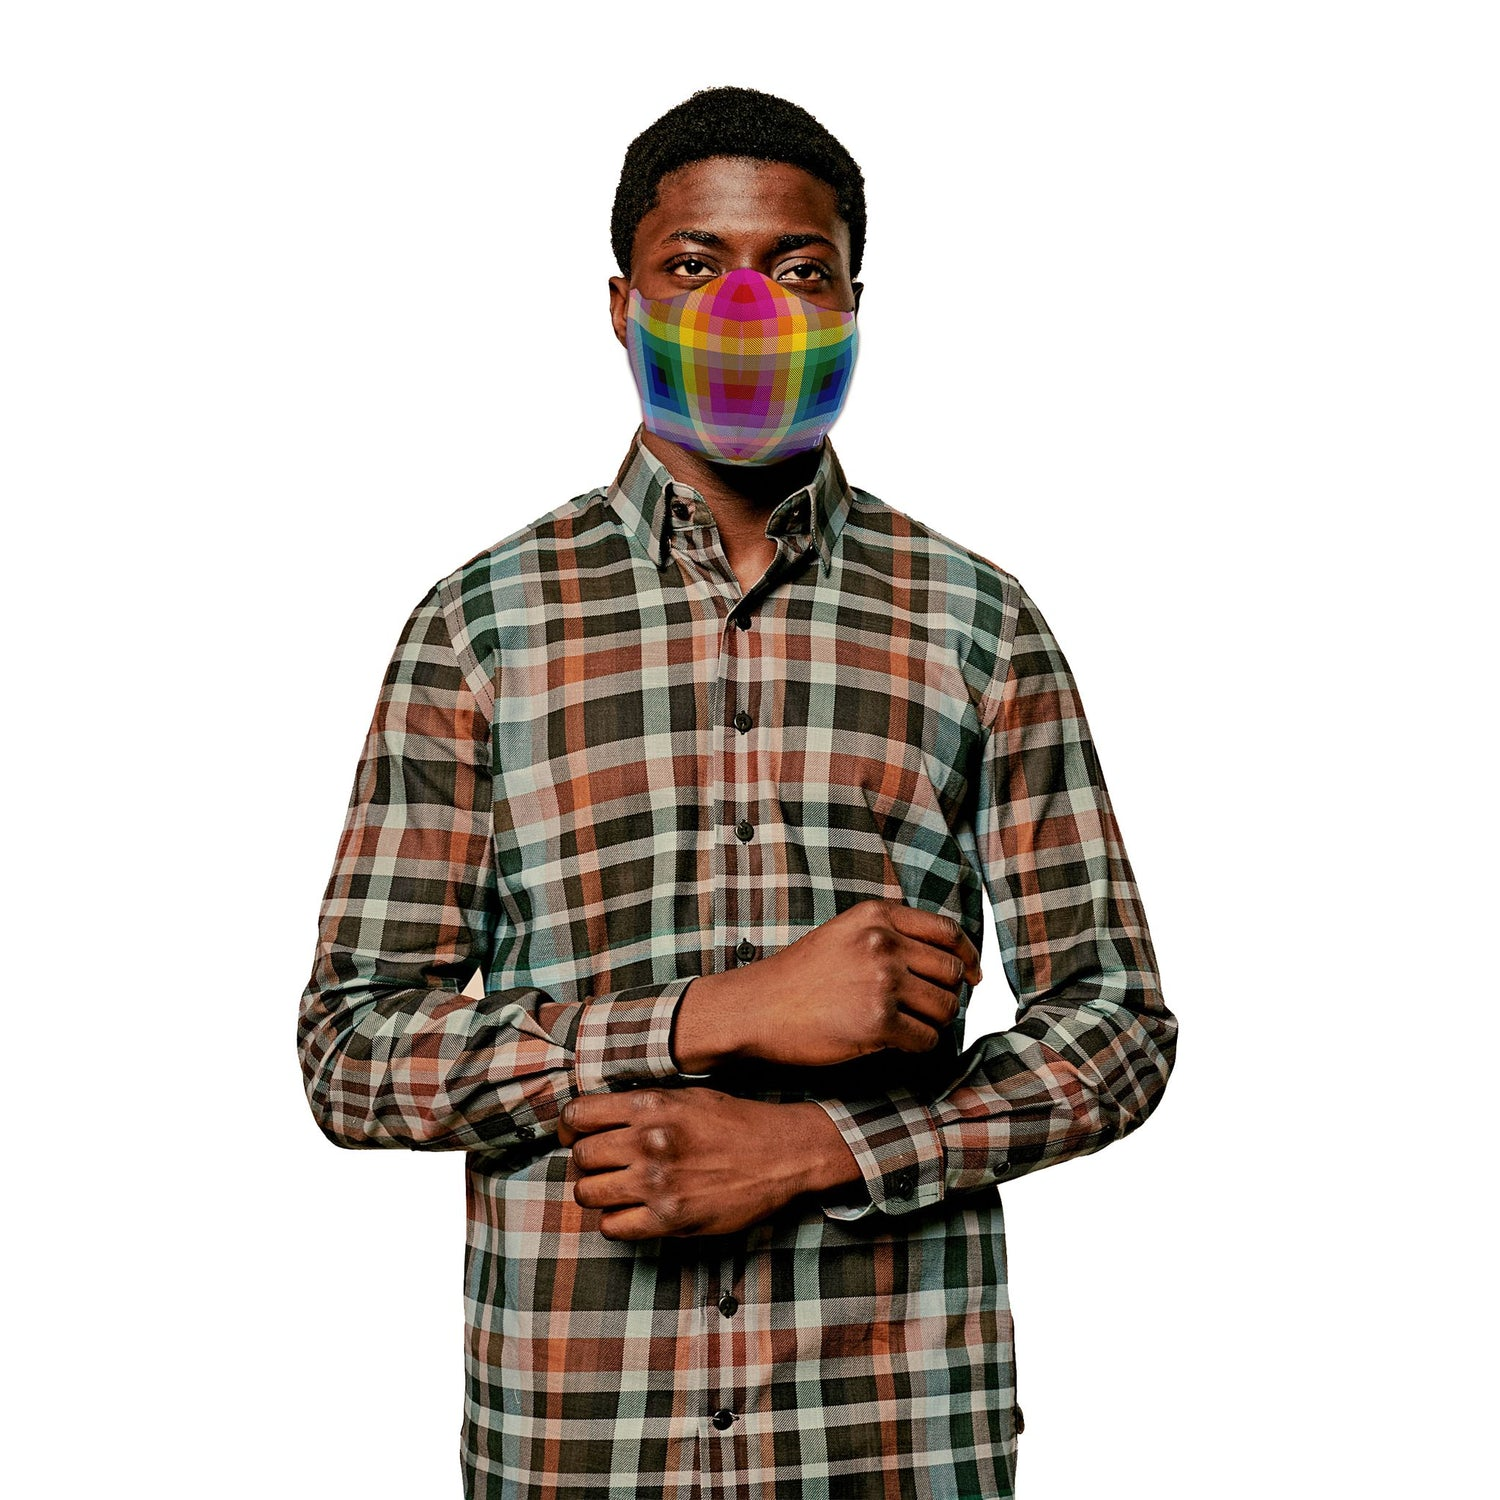 The 2020 Pride Plaid Face Mask